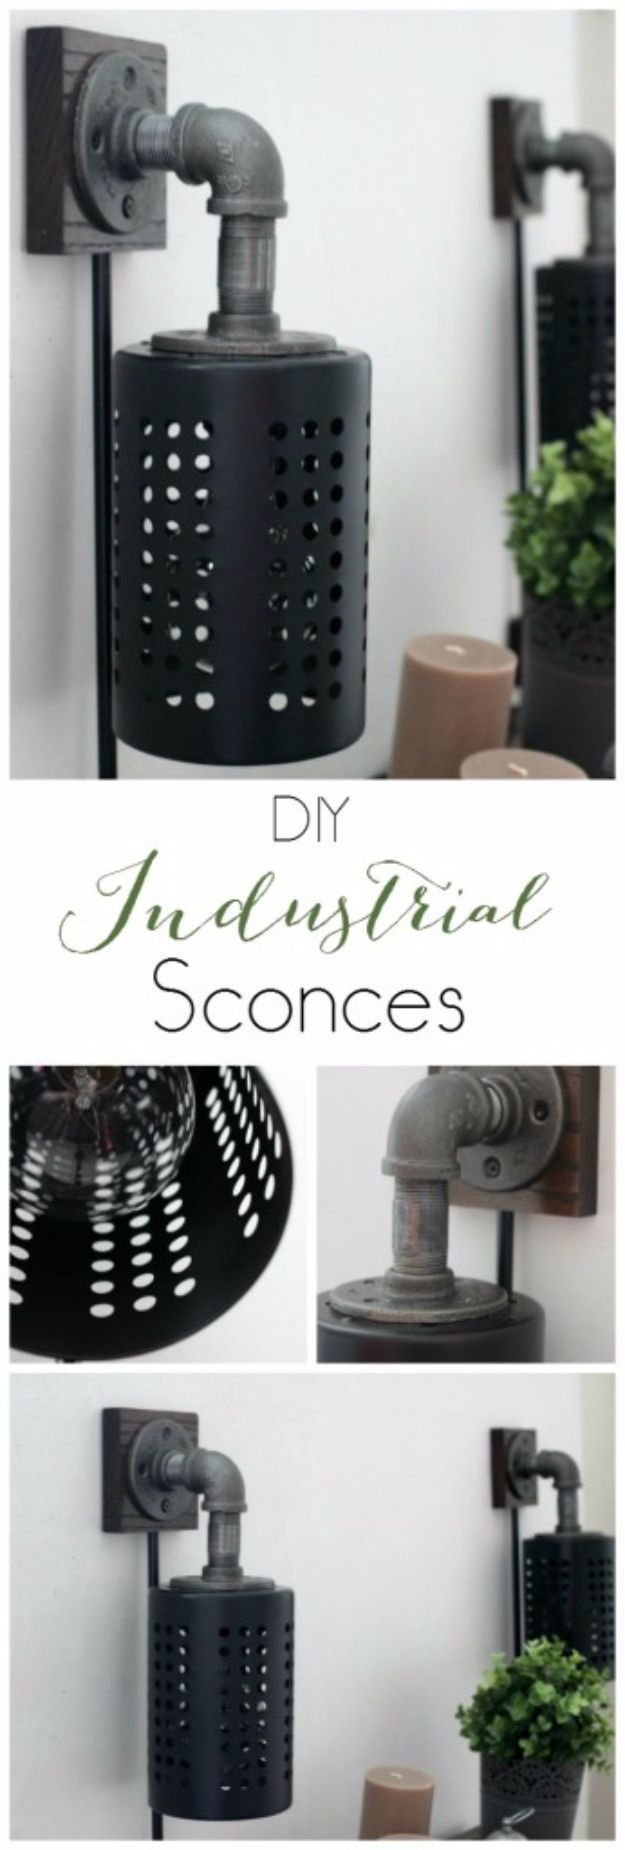 Best IKEA Hacks and DIY Hack Ideas for Furniture Projects and Home Decor from IKEA - DIY Industrial Sconces - Creative IKEA Hack Tutorials for DIY Platform Bed, Desk, Vanity, Dresser, Coffee Table, Storage and Kitchen, Bedroom and Bathroom Decor http://diyjoy.com/best-ikea-hacks